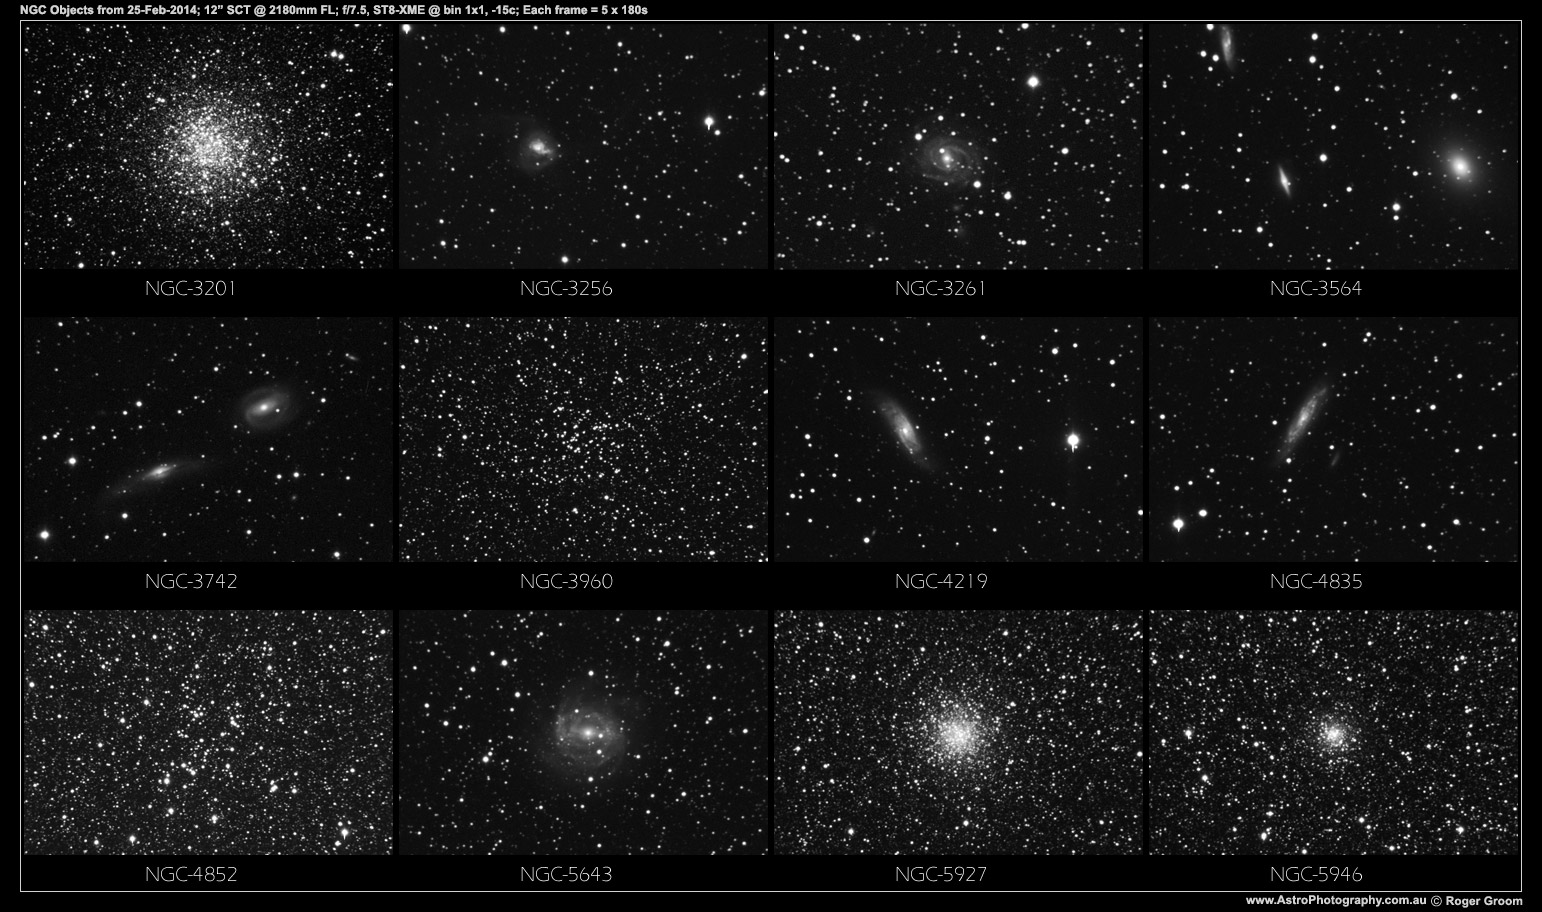 NGC Objects 25th February 2014